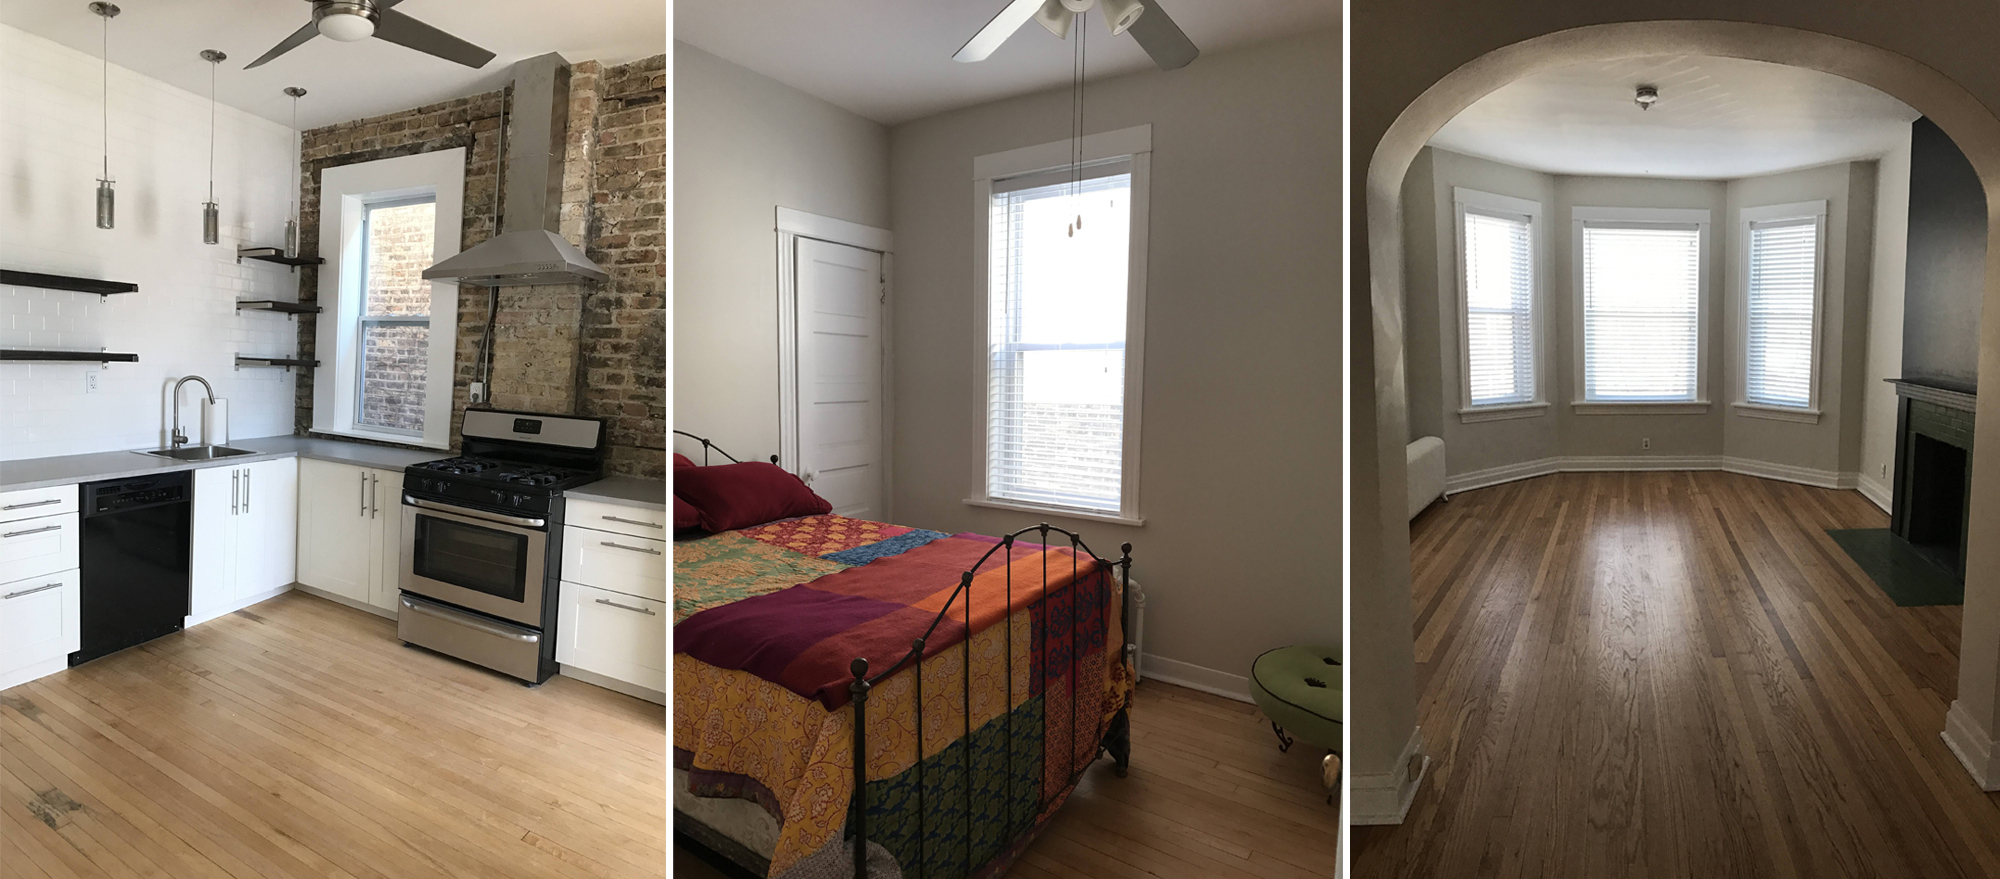 Albany park chicago curbed chicago - Three bedroom apartments chicago ...